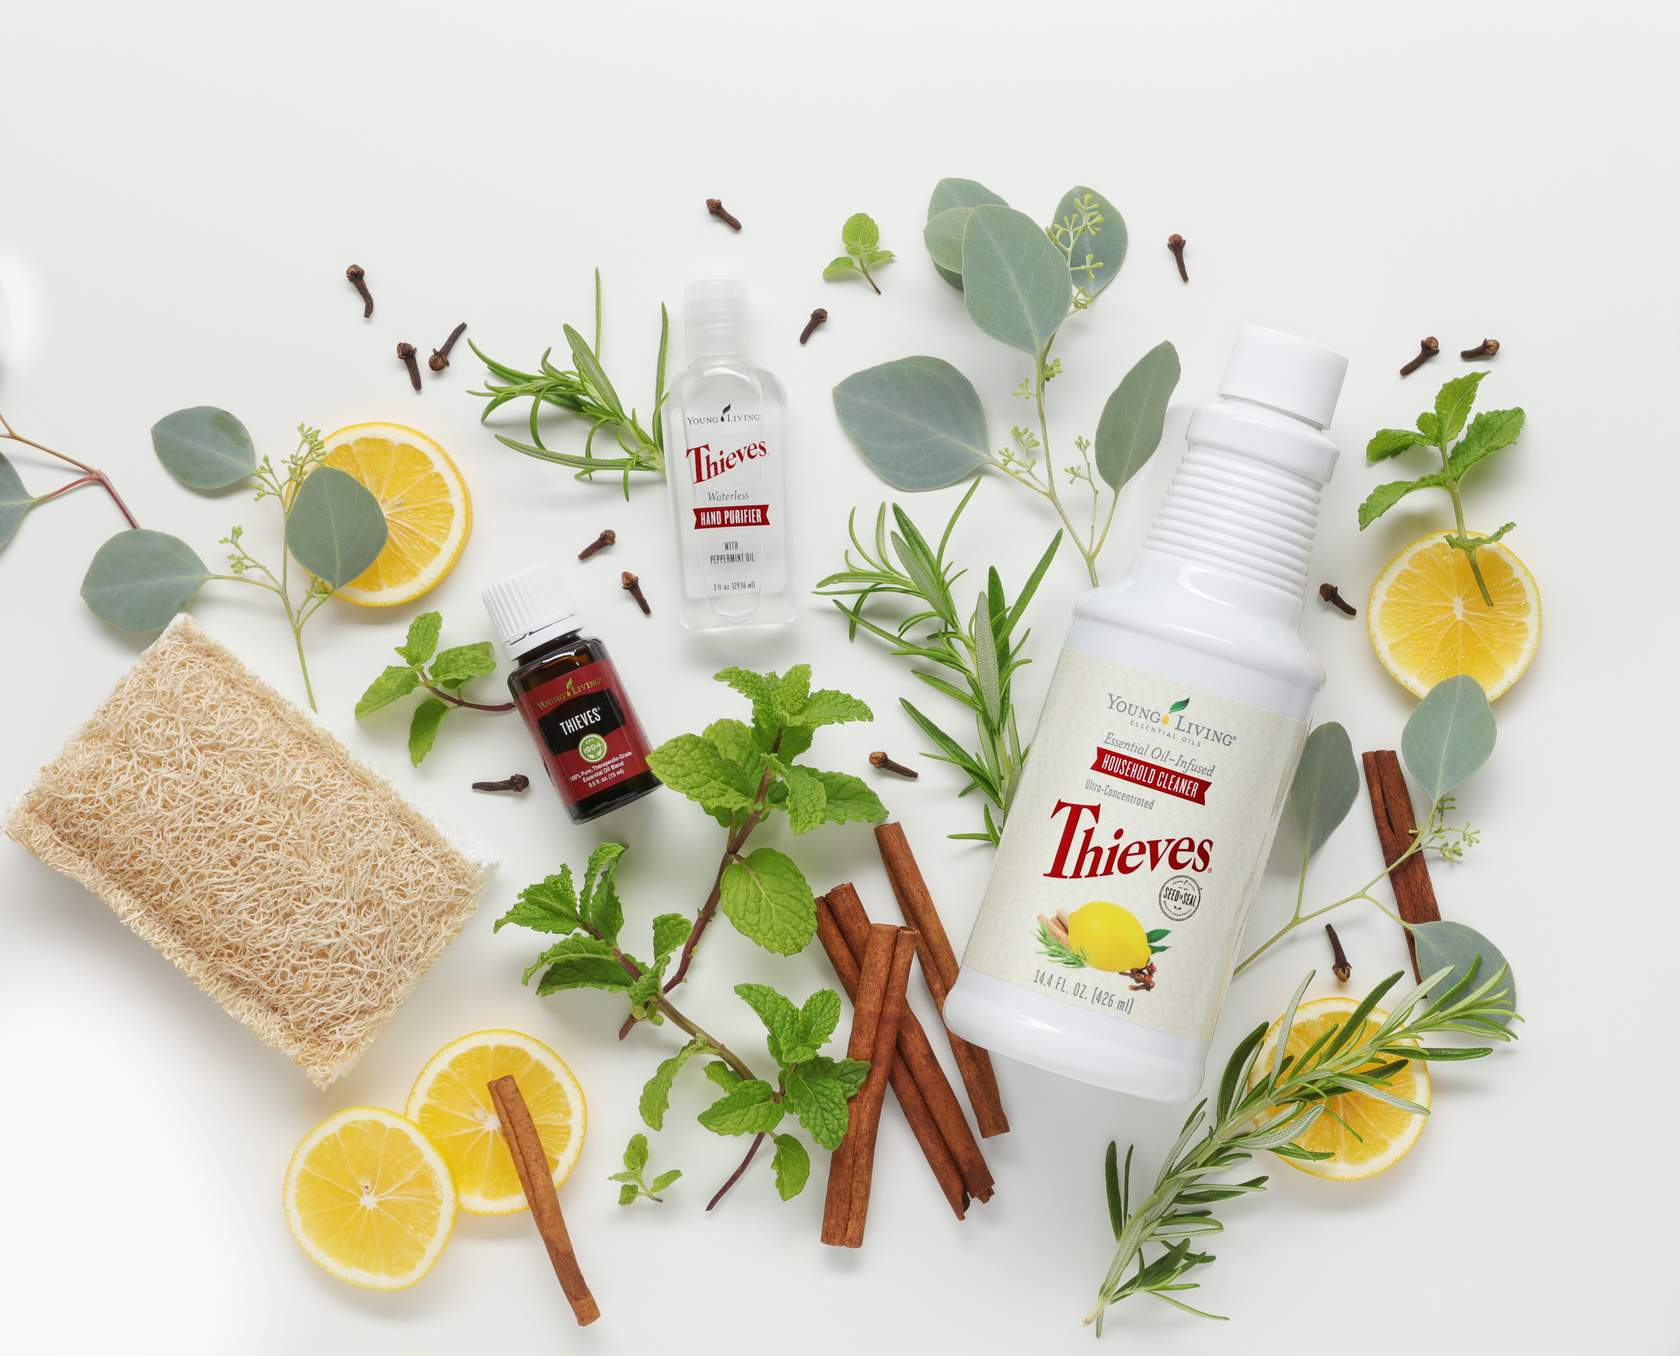 thieves products with lemon and cinnamon